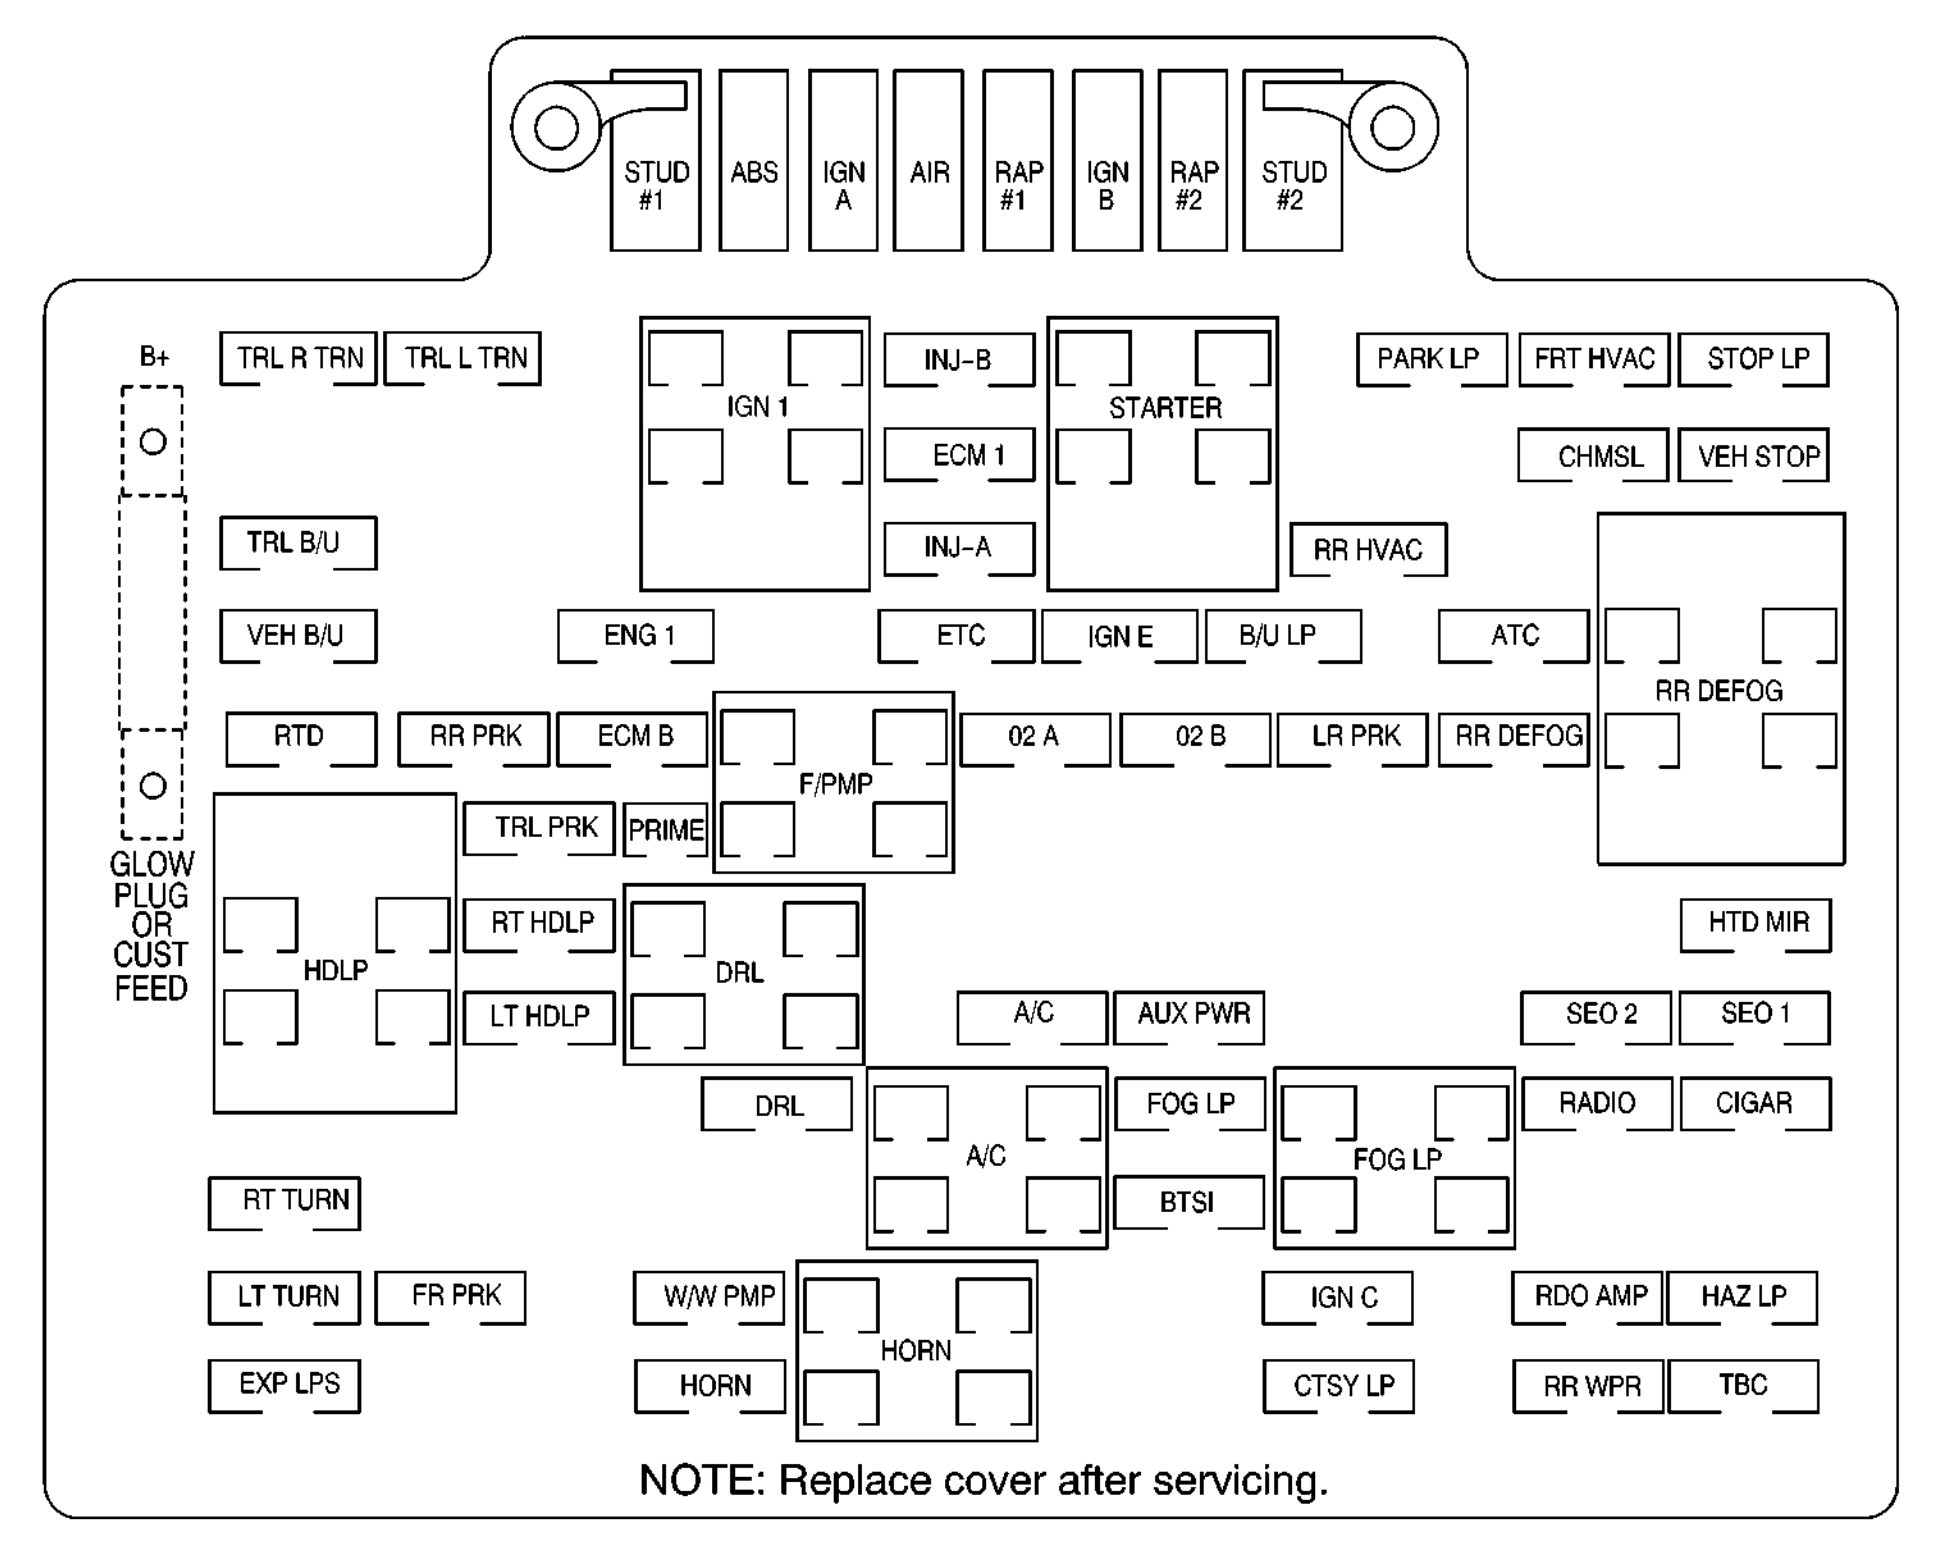 Saab 9 3 Fuse Box Diagram 05 Dodge Stratus Engine Diagram